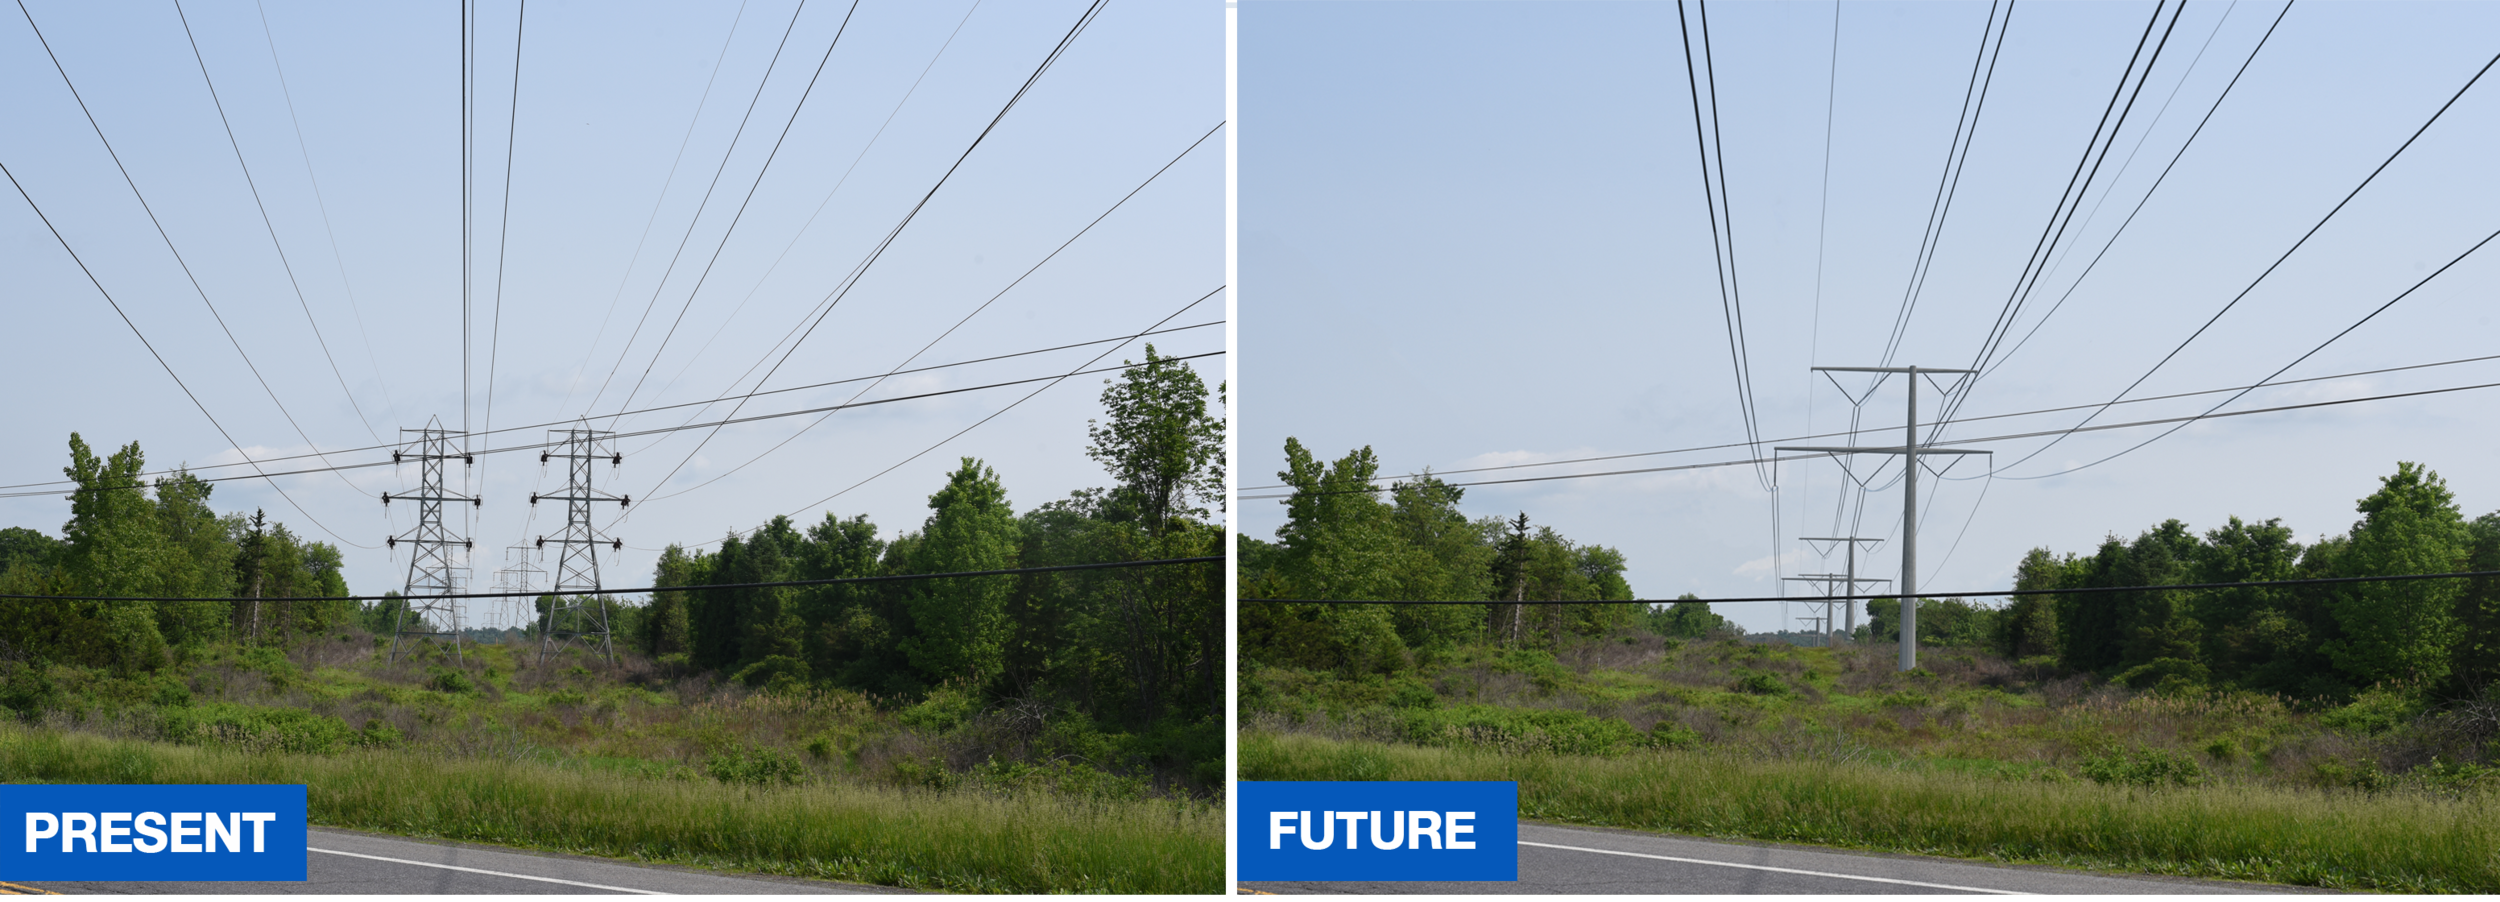 These photos represent what will take place on 0.9 miles of the Claverack route. For illustrative purposes only.